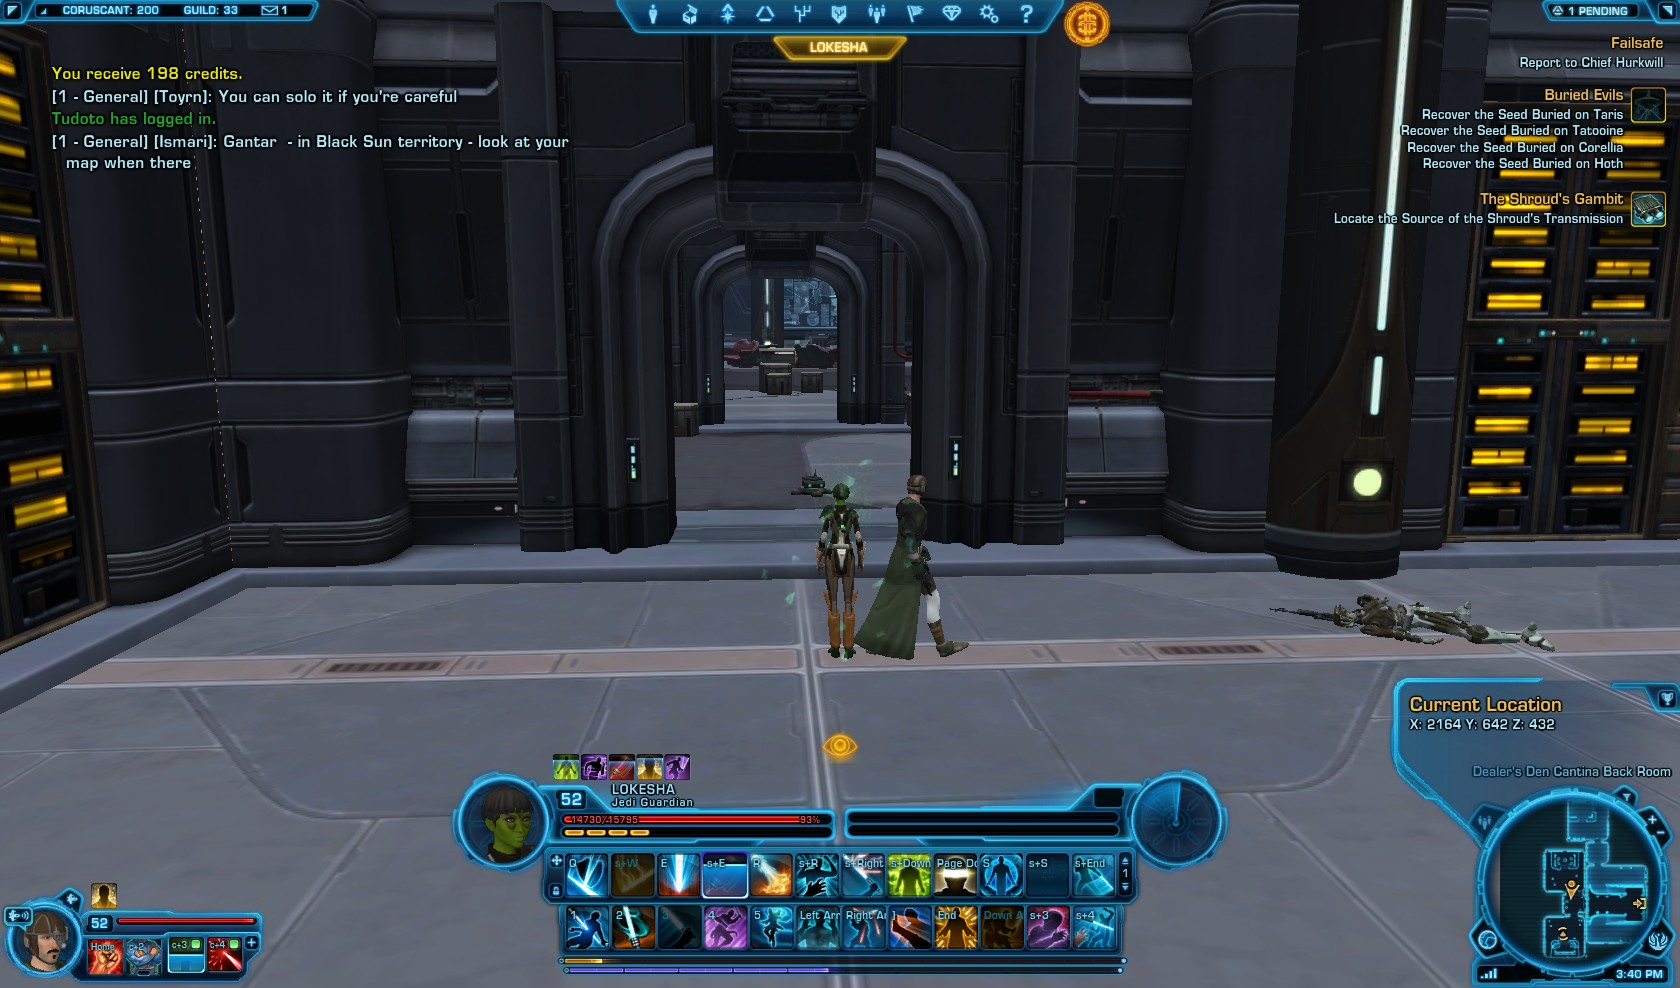 Swtor The Shrouds Gambit Macrobinoculars Mission